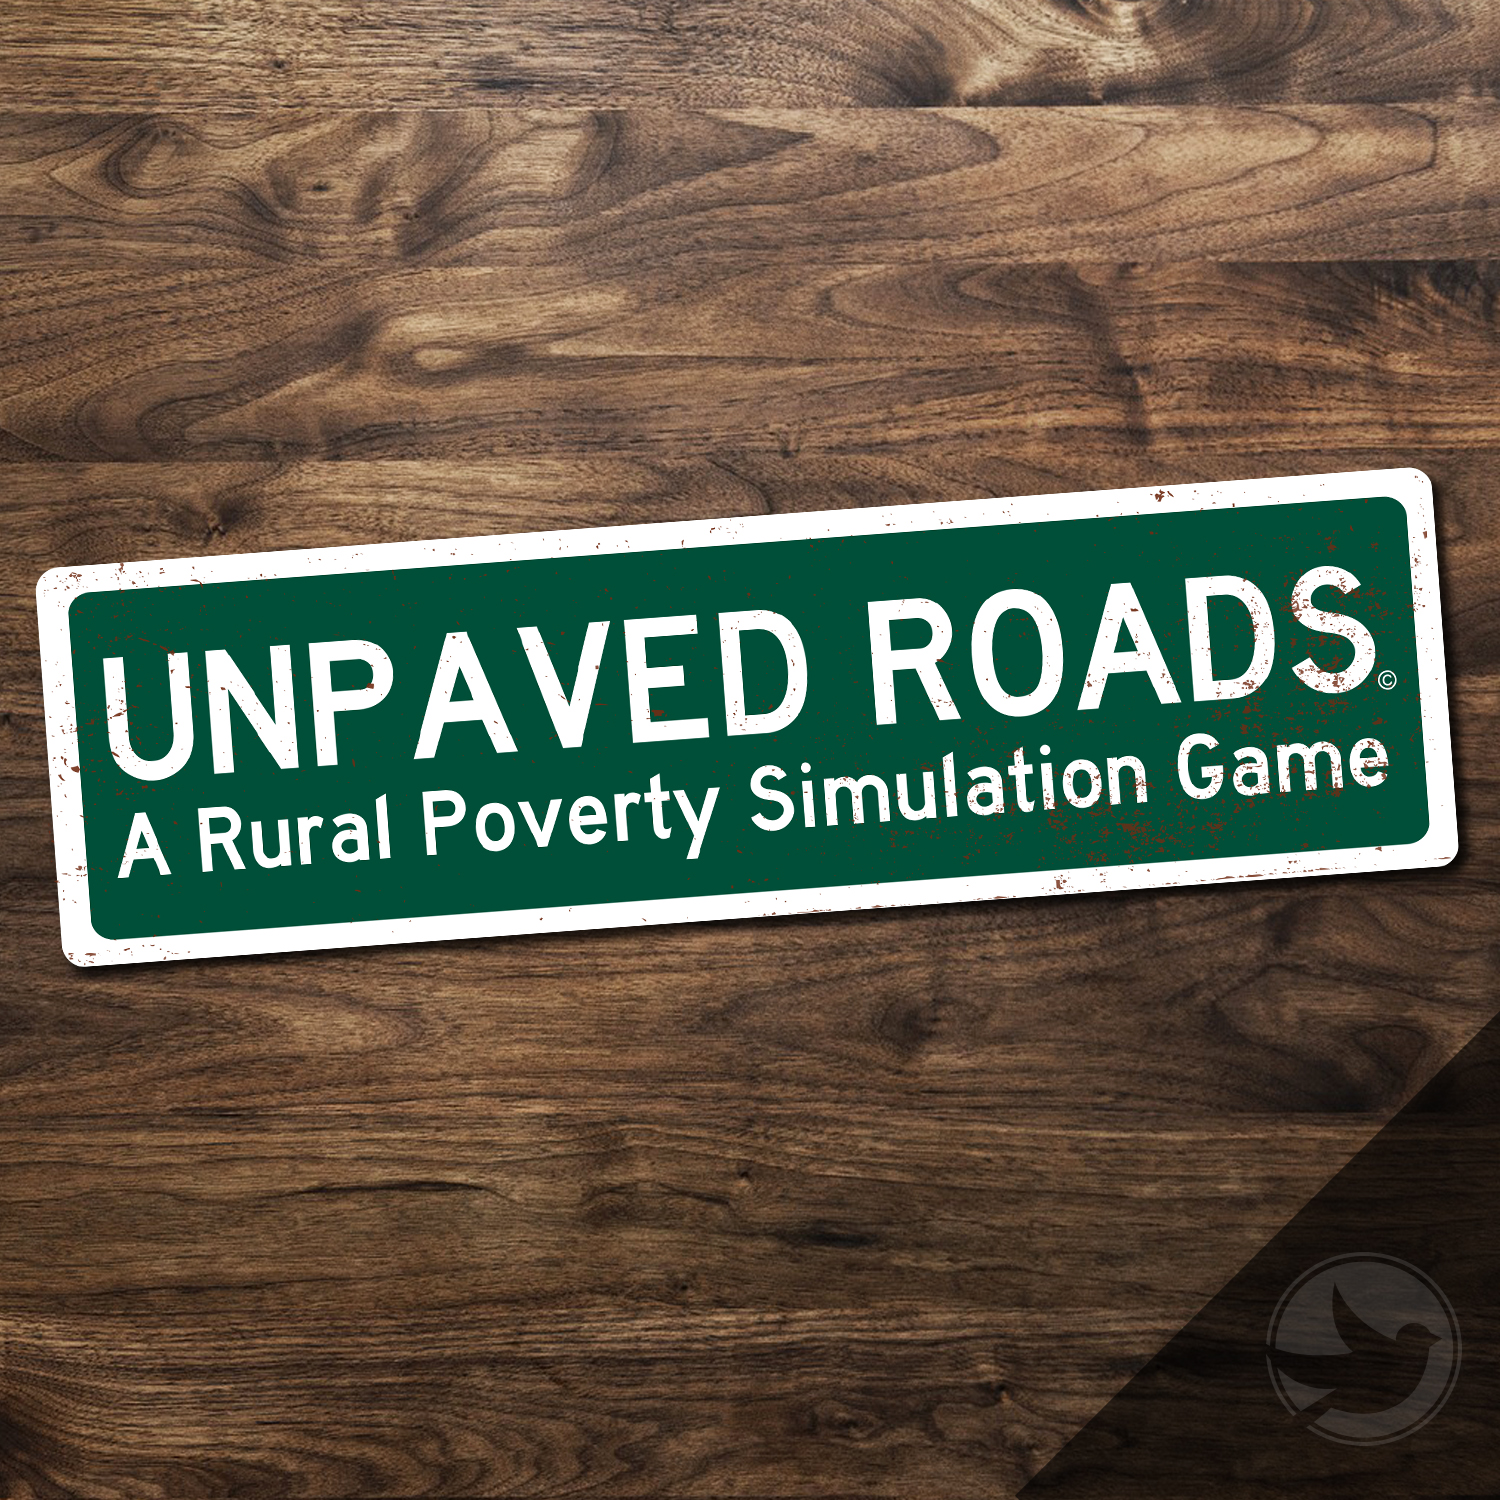 Unpaved Roads.jpg